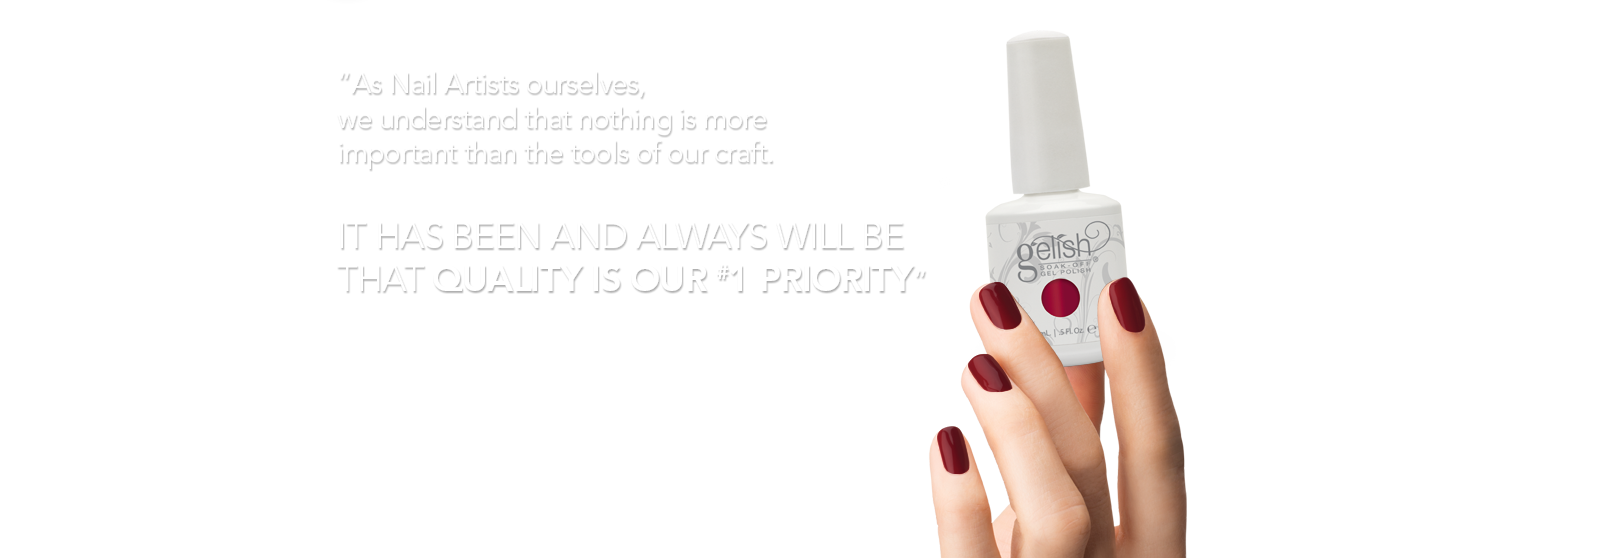 It has been and always will be  that quality is our #1 priority